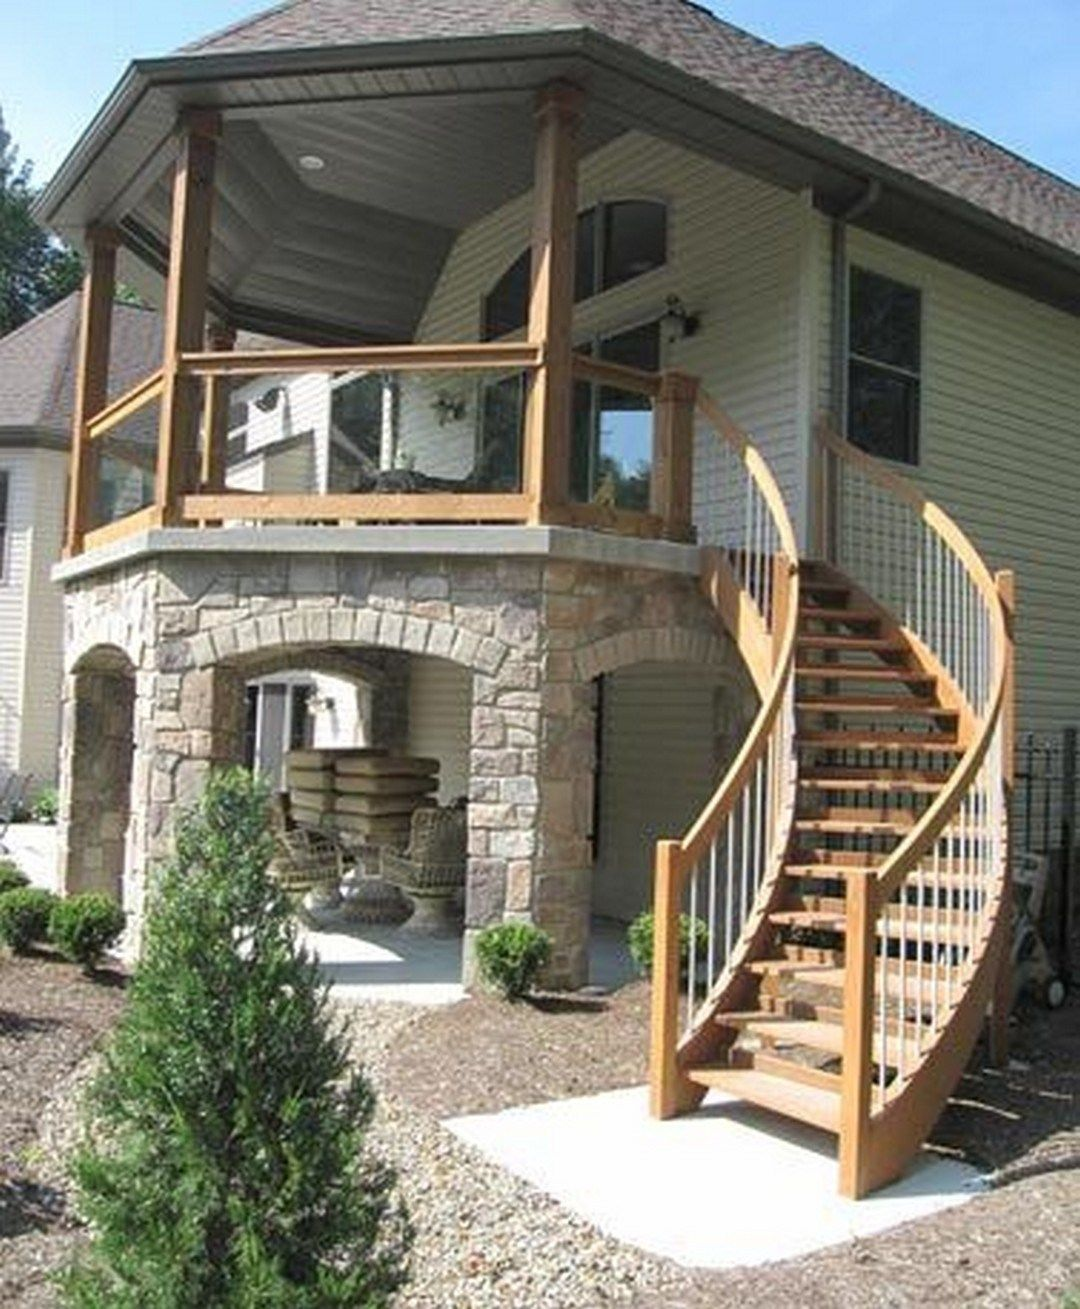 Best Second Floor Deck With Screened In Porch Design And Stairs 400 x 300